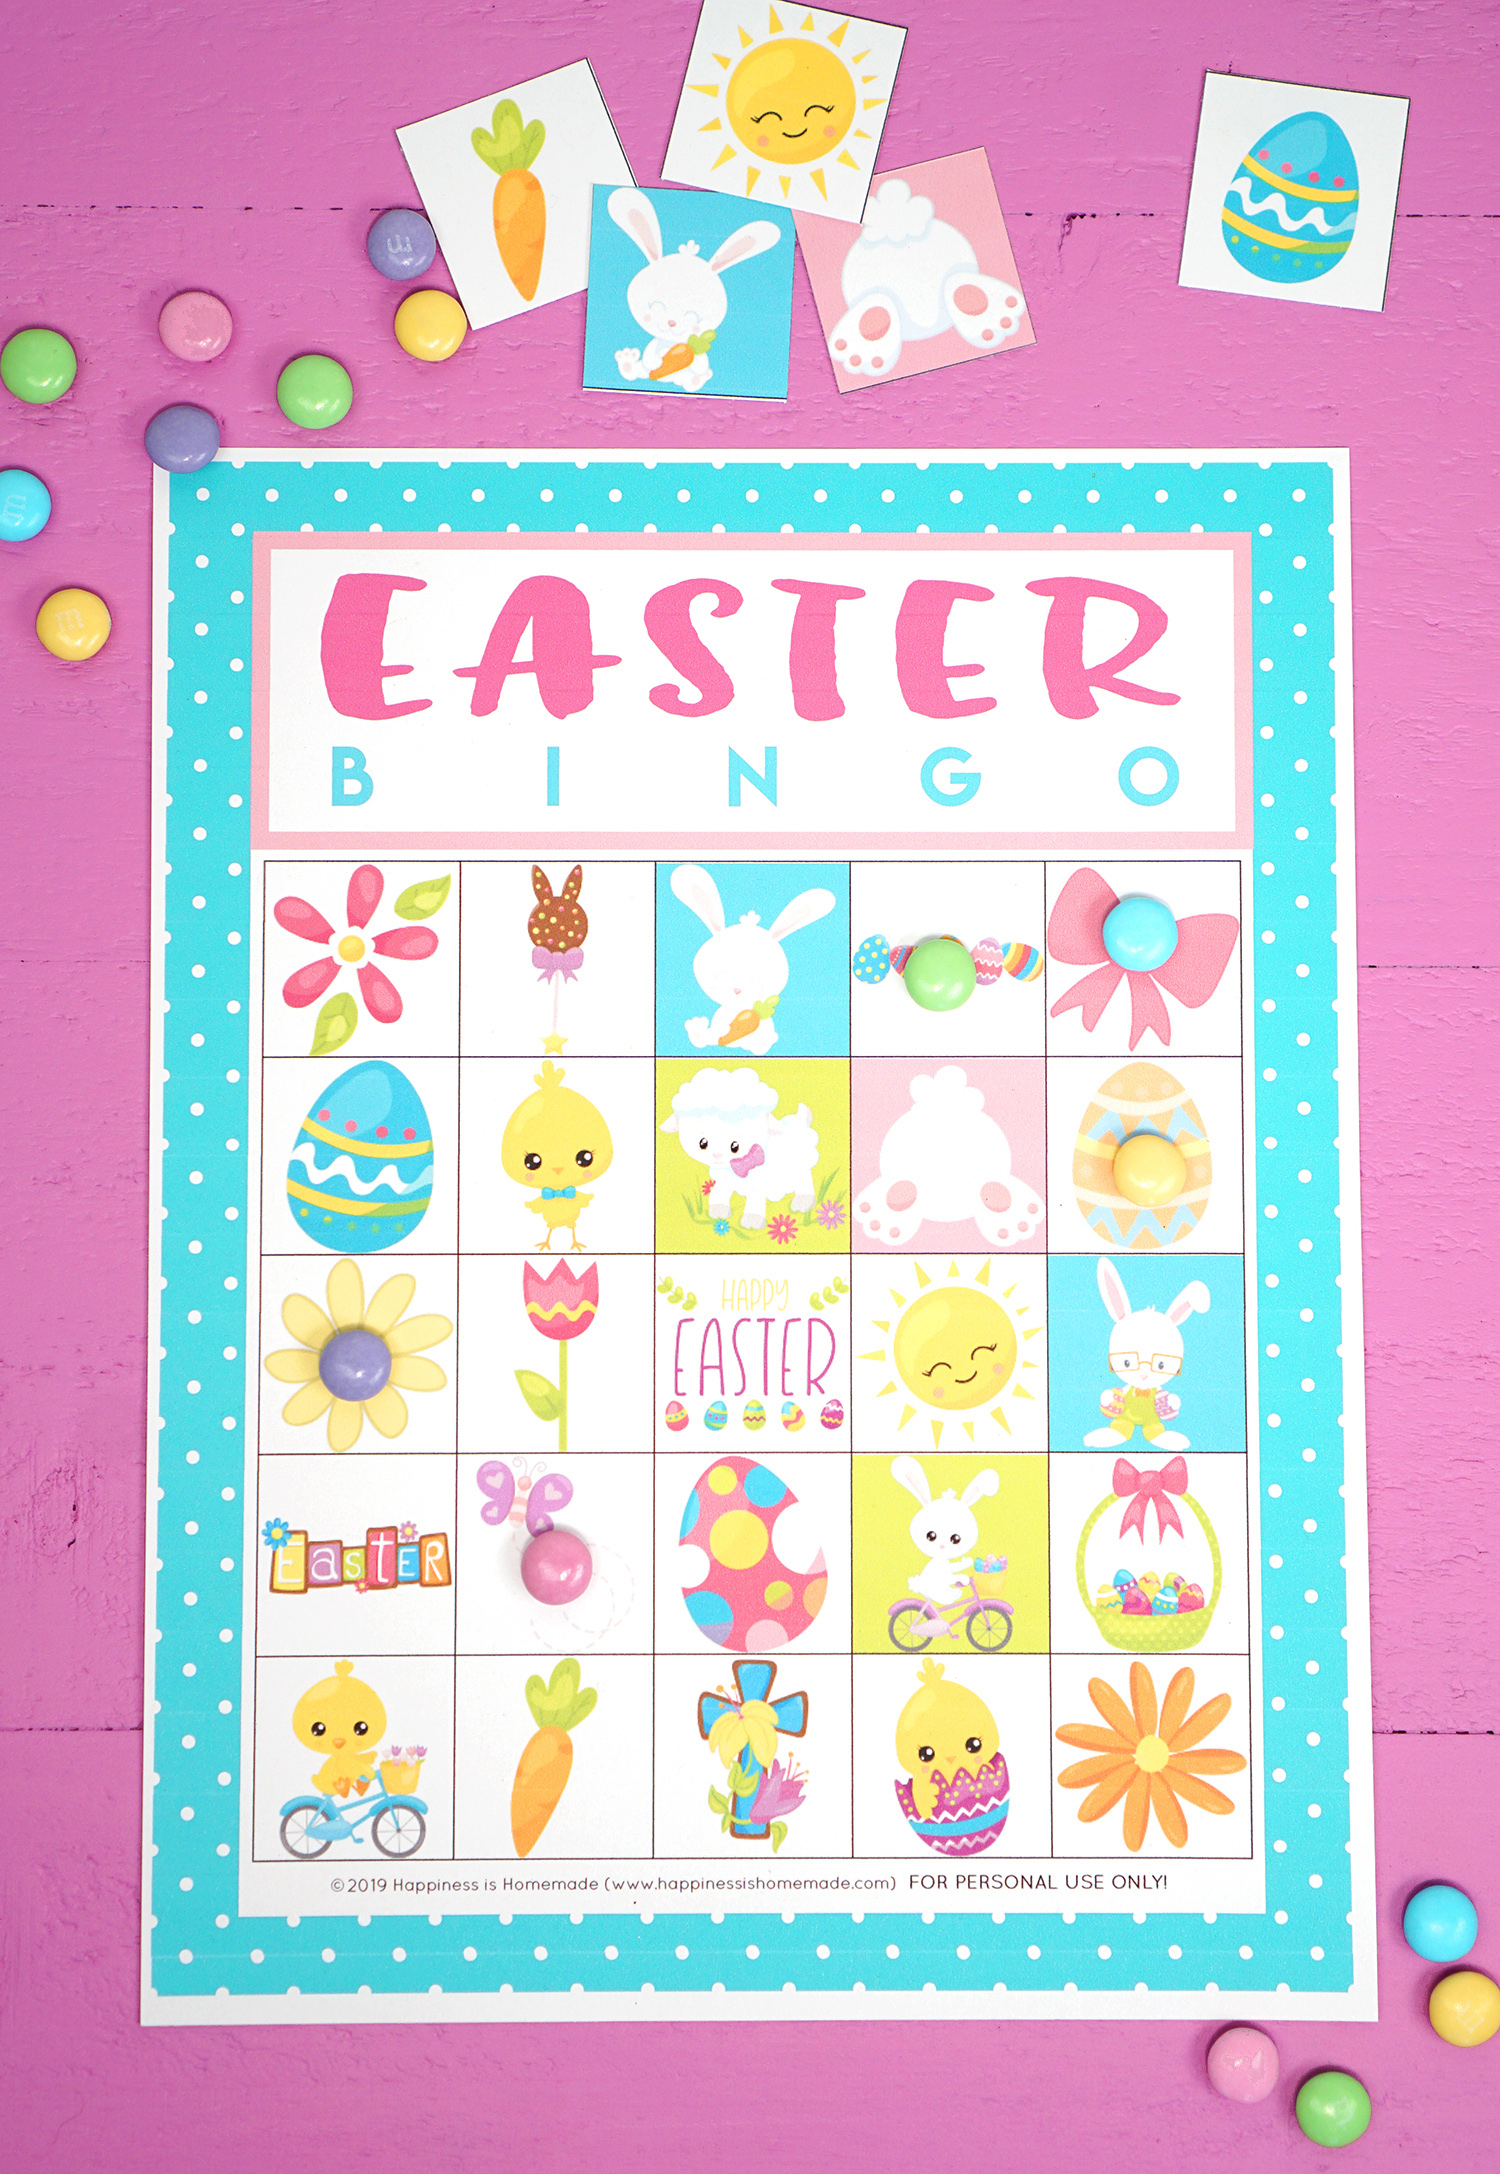 Free Printable Easter Bingo Game Cards - Happiness Is Homemade